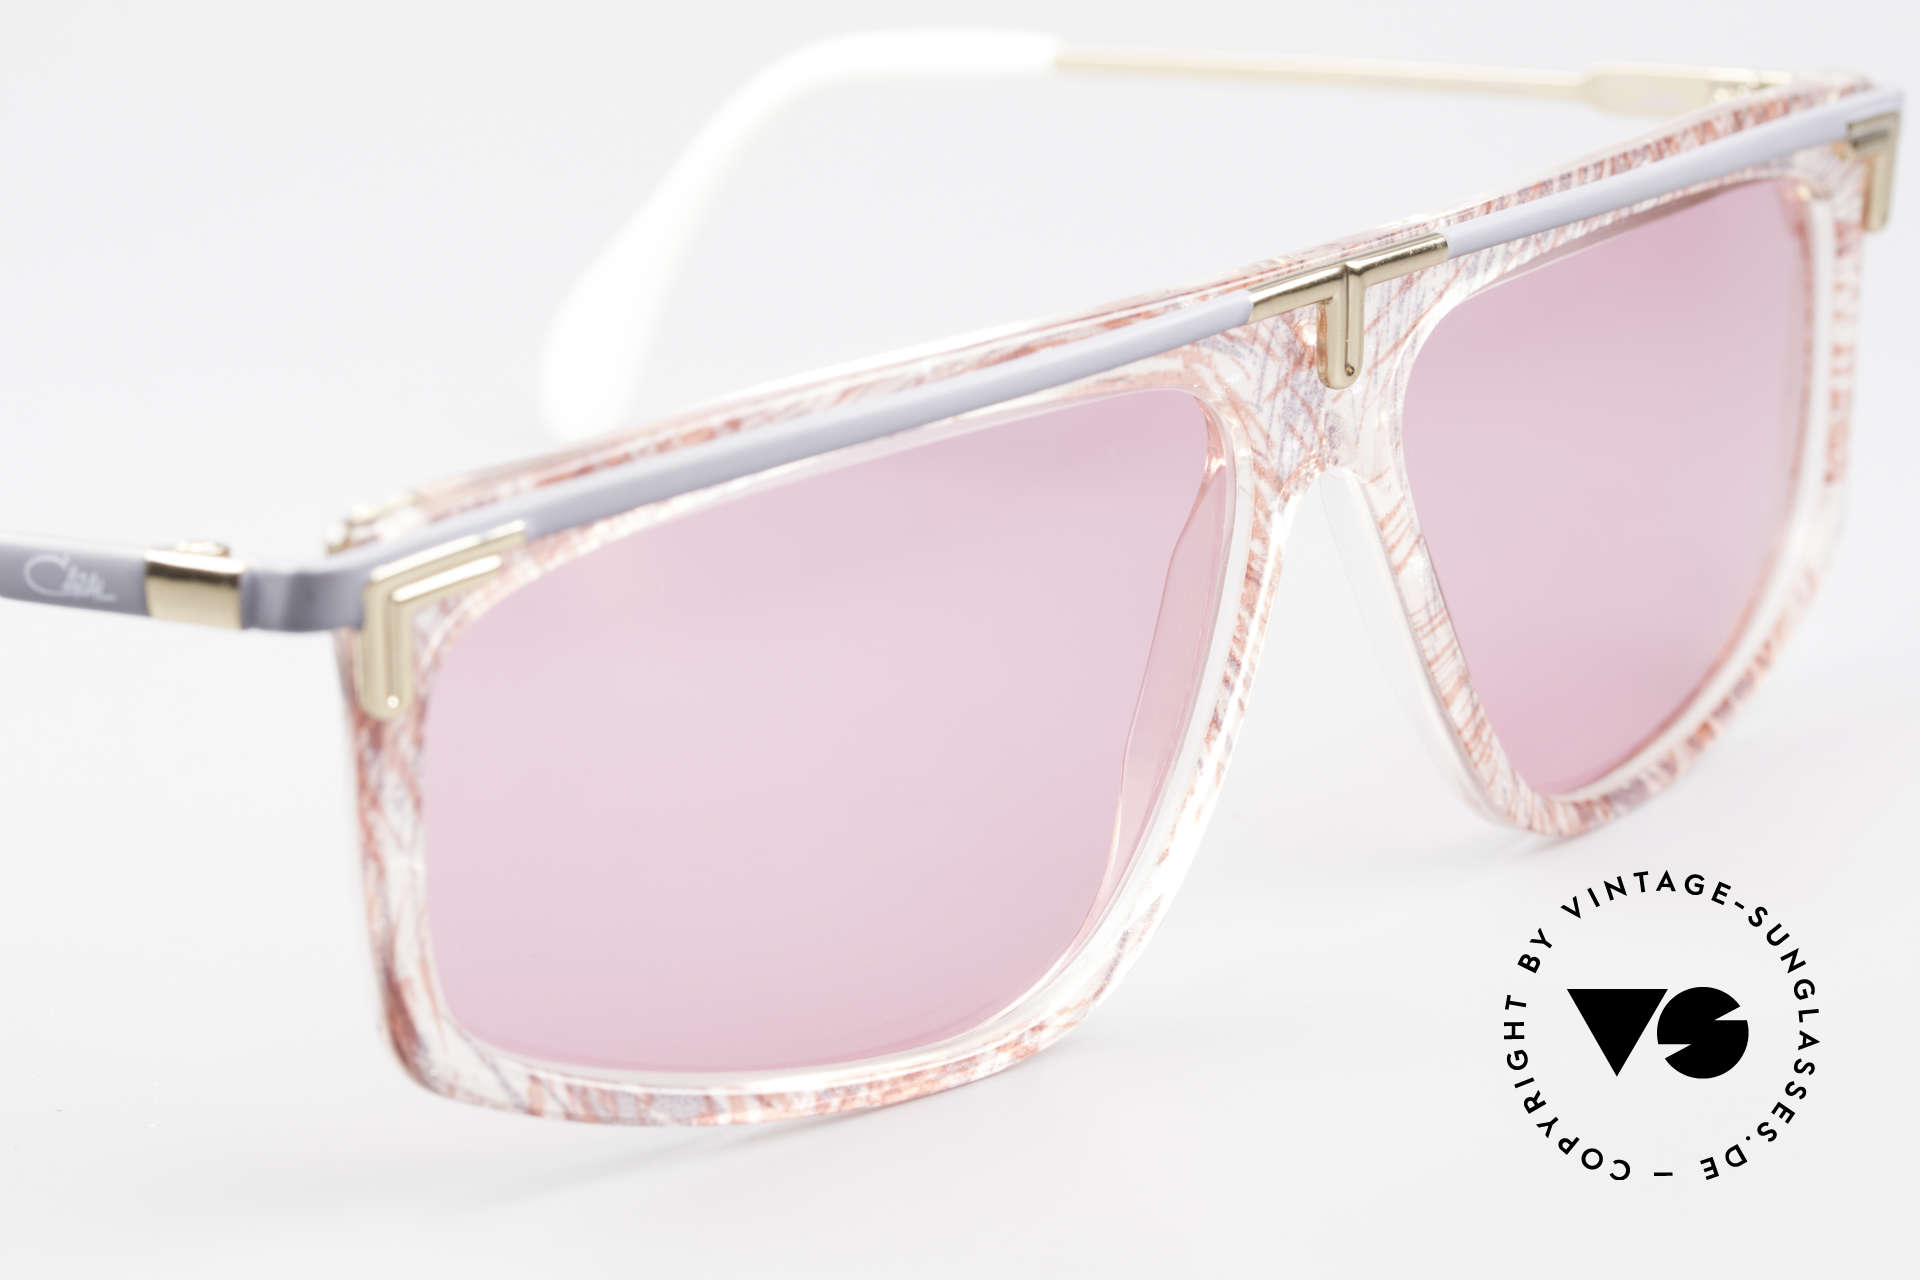 Cazal 190 80s Old School Hip Hop Shades, today called as 'HipHop glasses' or 'old school glasses', Made for Men and Women